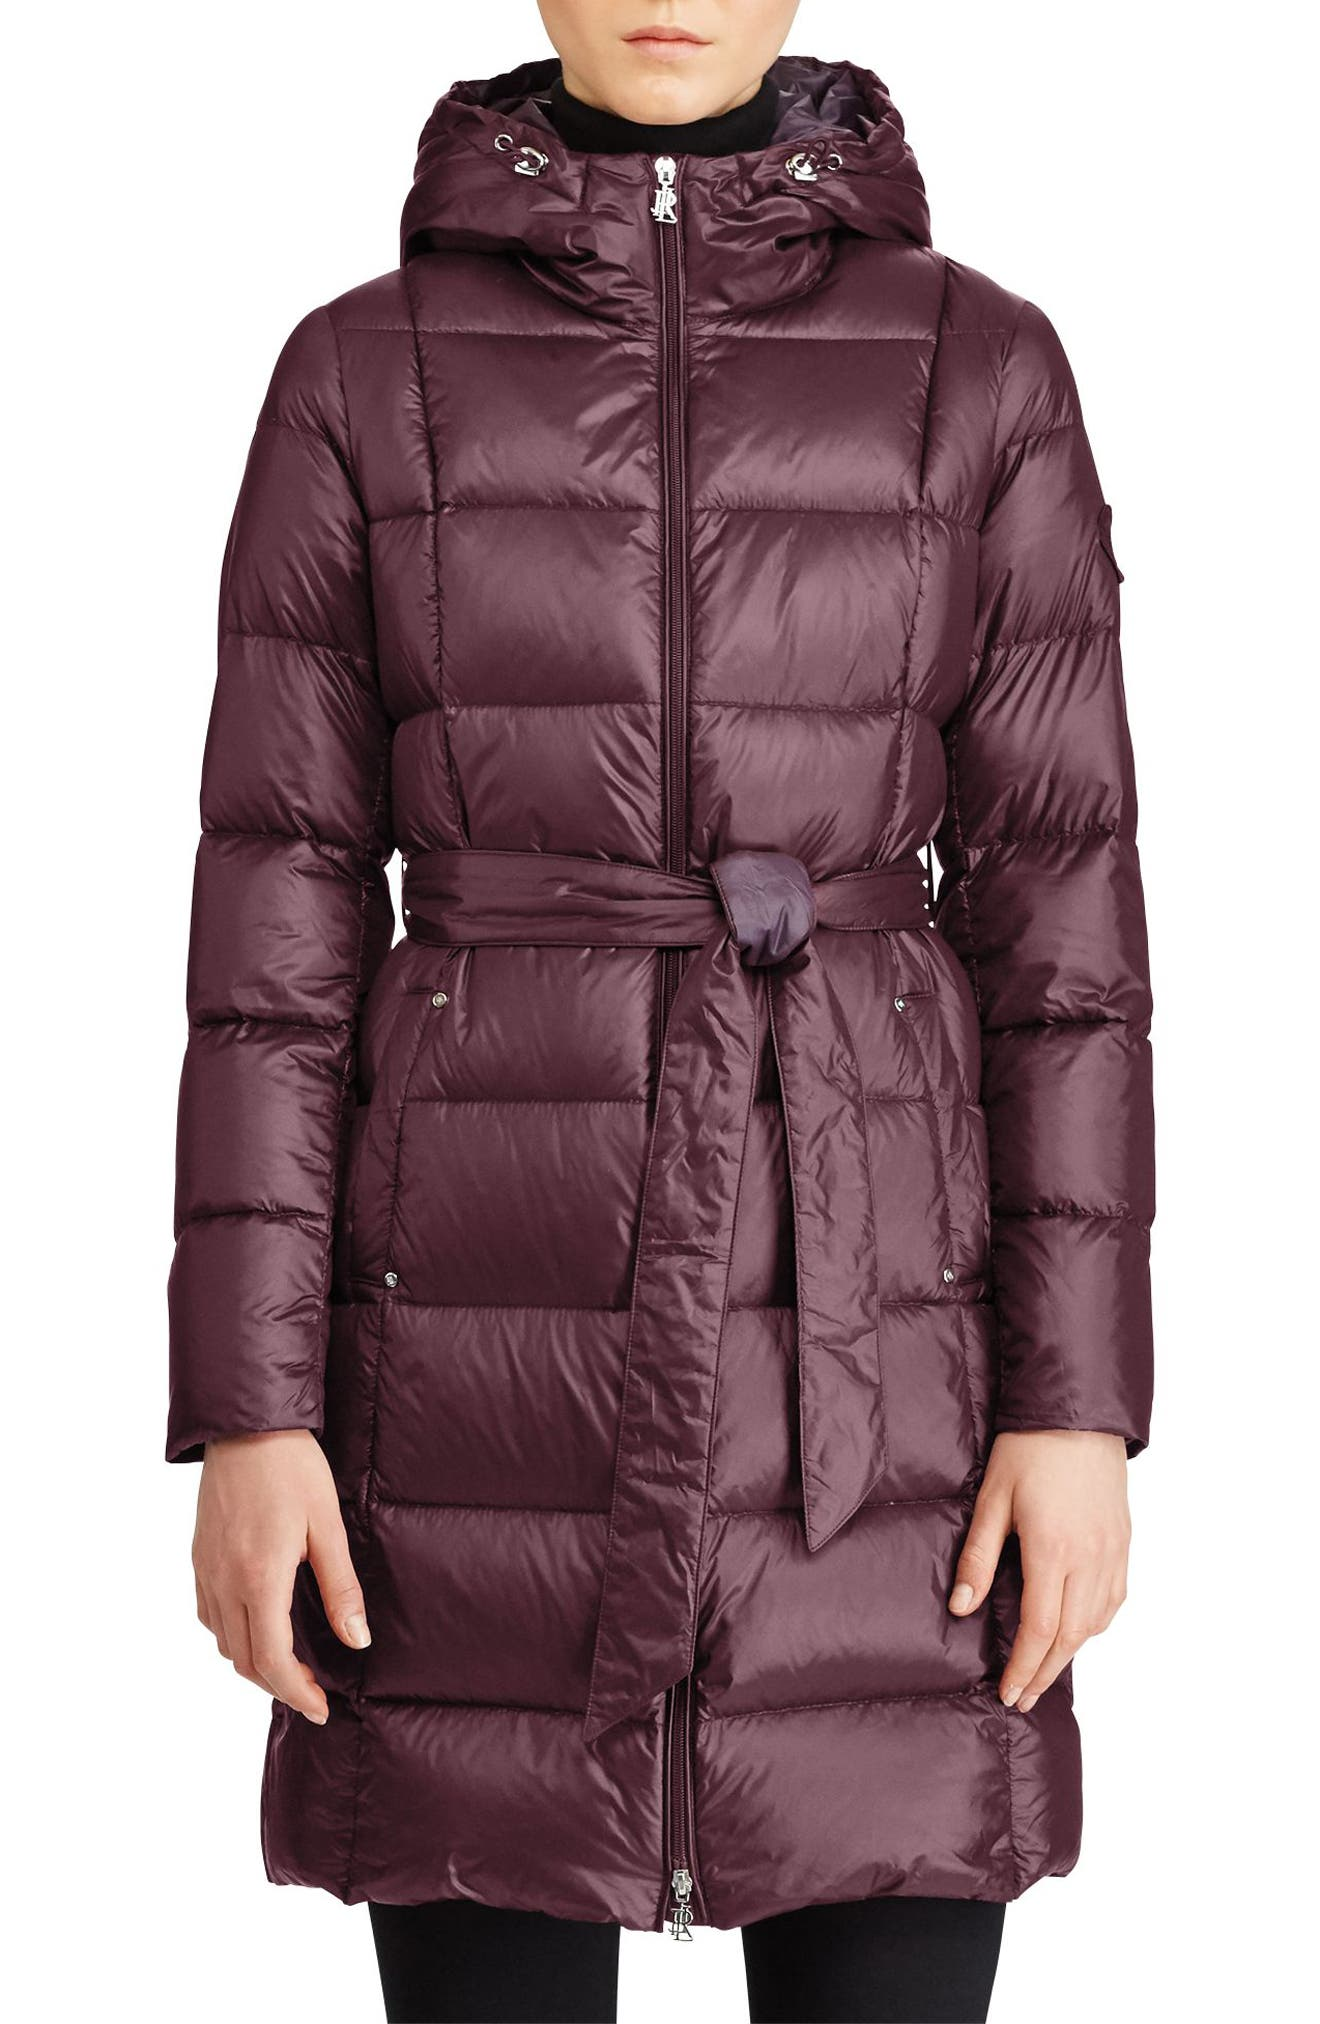 Packable Belted Down Jacket,                             Main thumbnail 1, color,                             Burgundy/ Aubergine